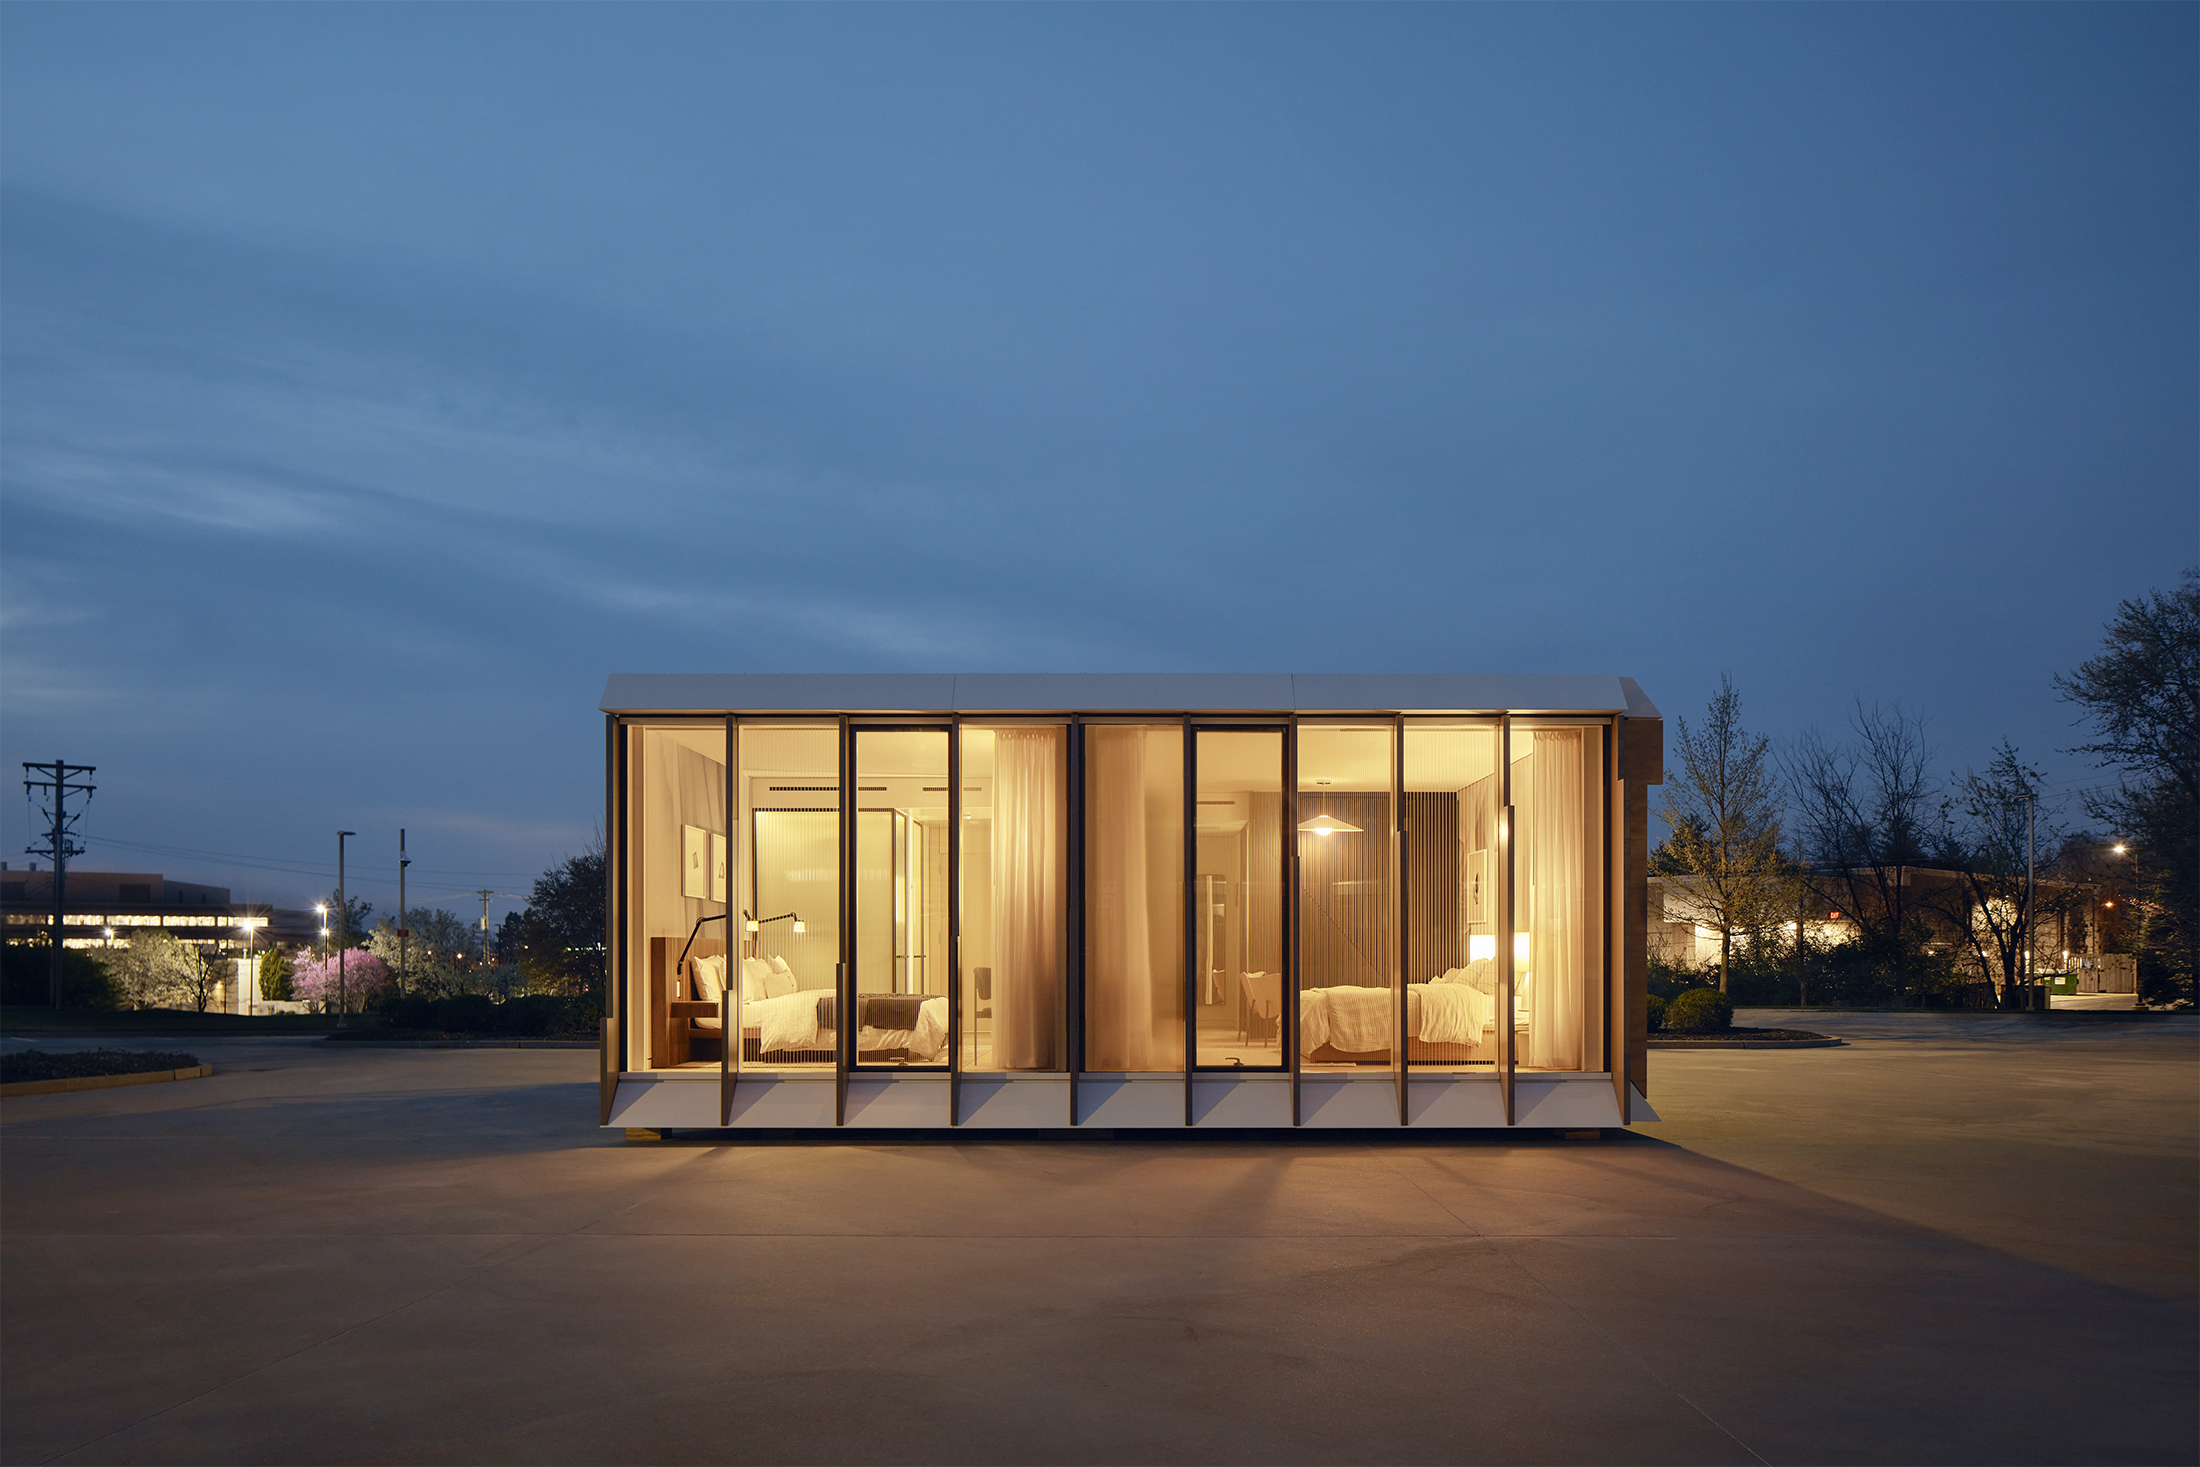 Modular Solutions Press Release by MiTek - The exterior of a volumetric modular unit for hotel